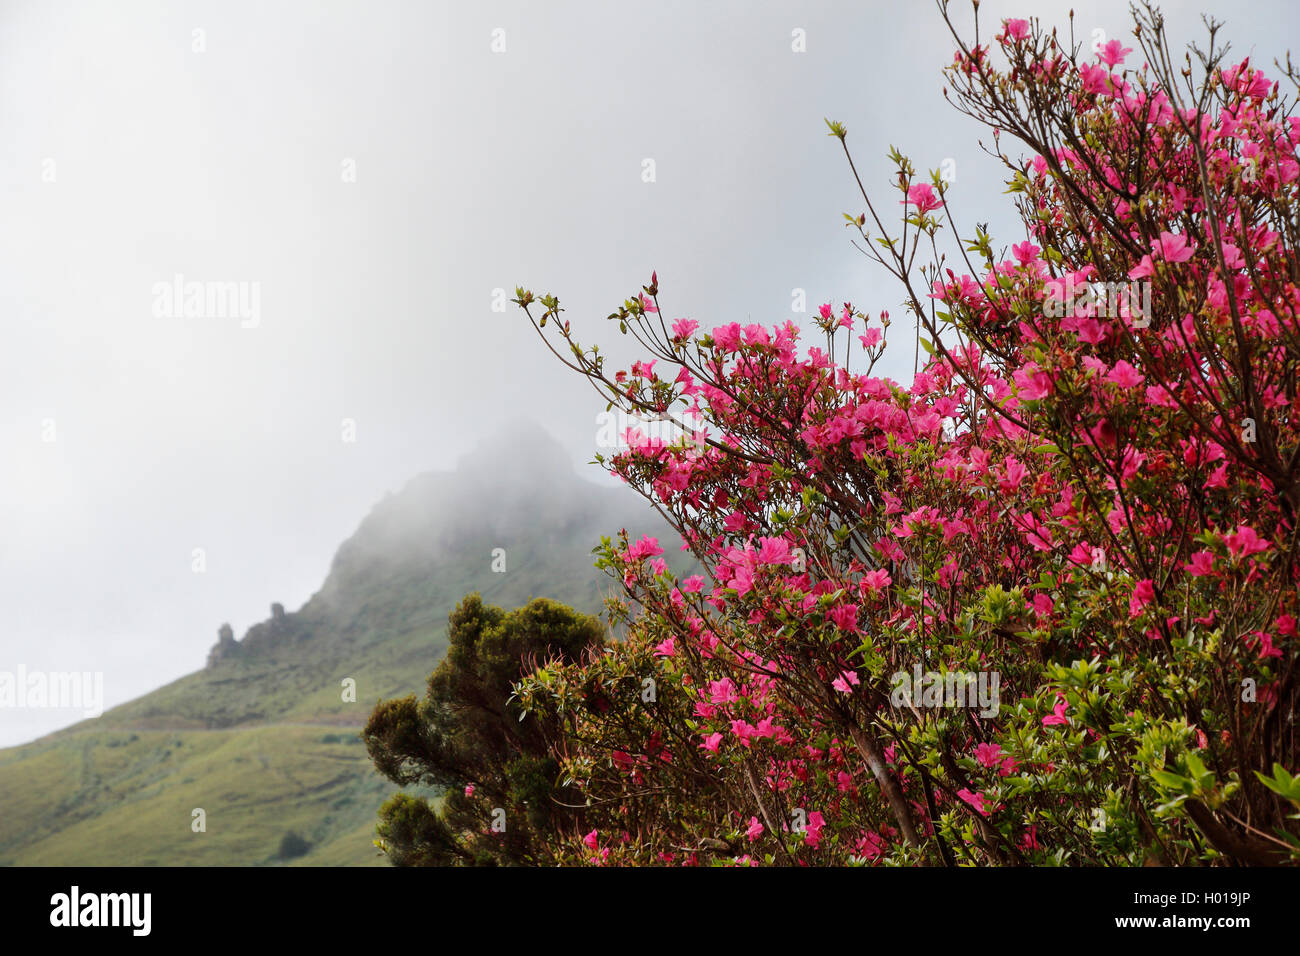 azalea (Azalea spec.), blooming azalea and Pico Negro with mist, Portugal, Azores, Flores Stock Photo